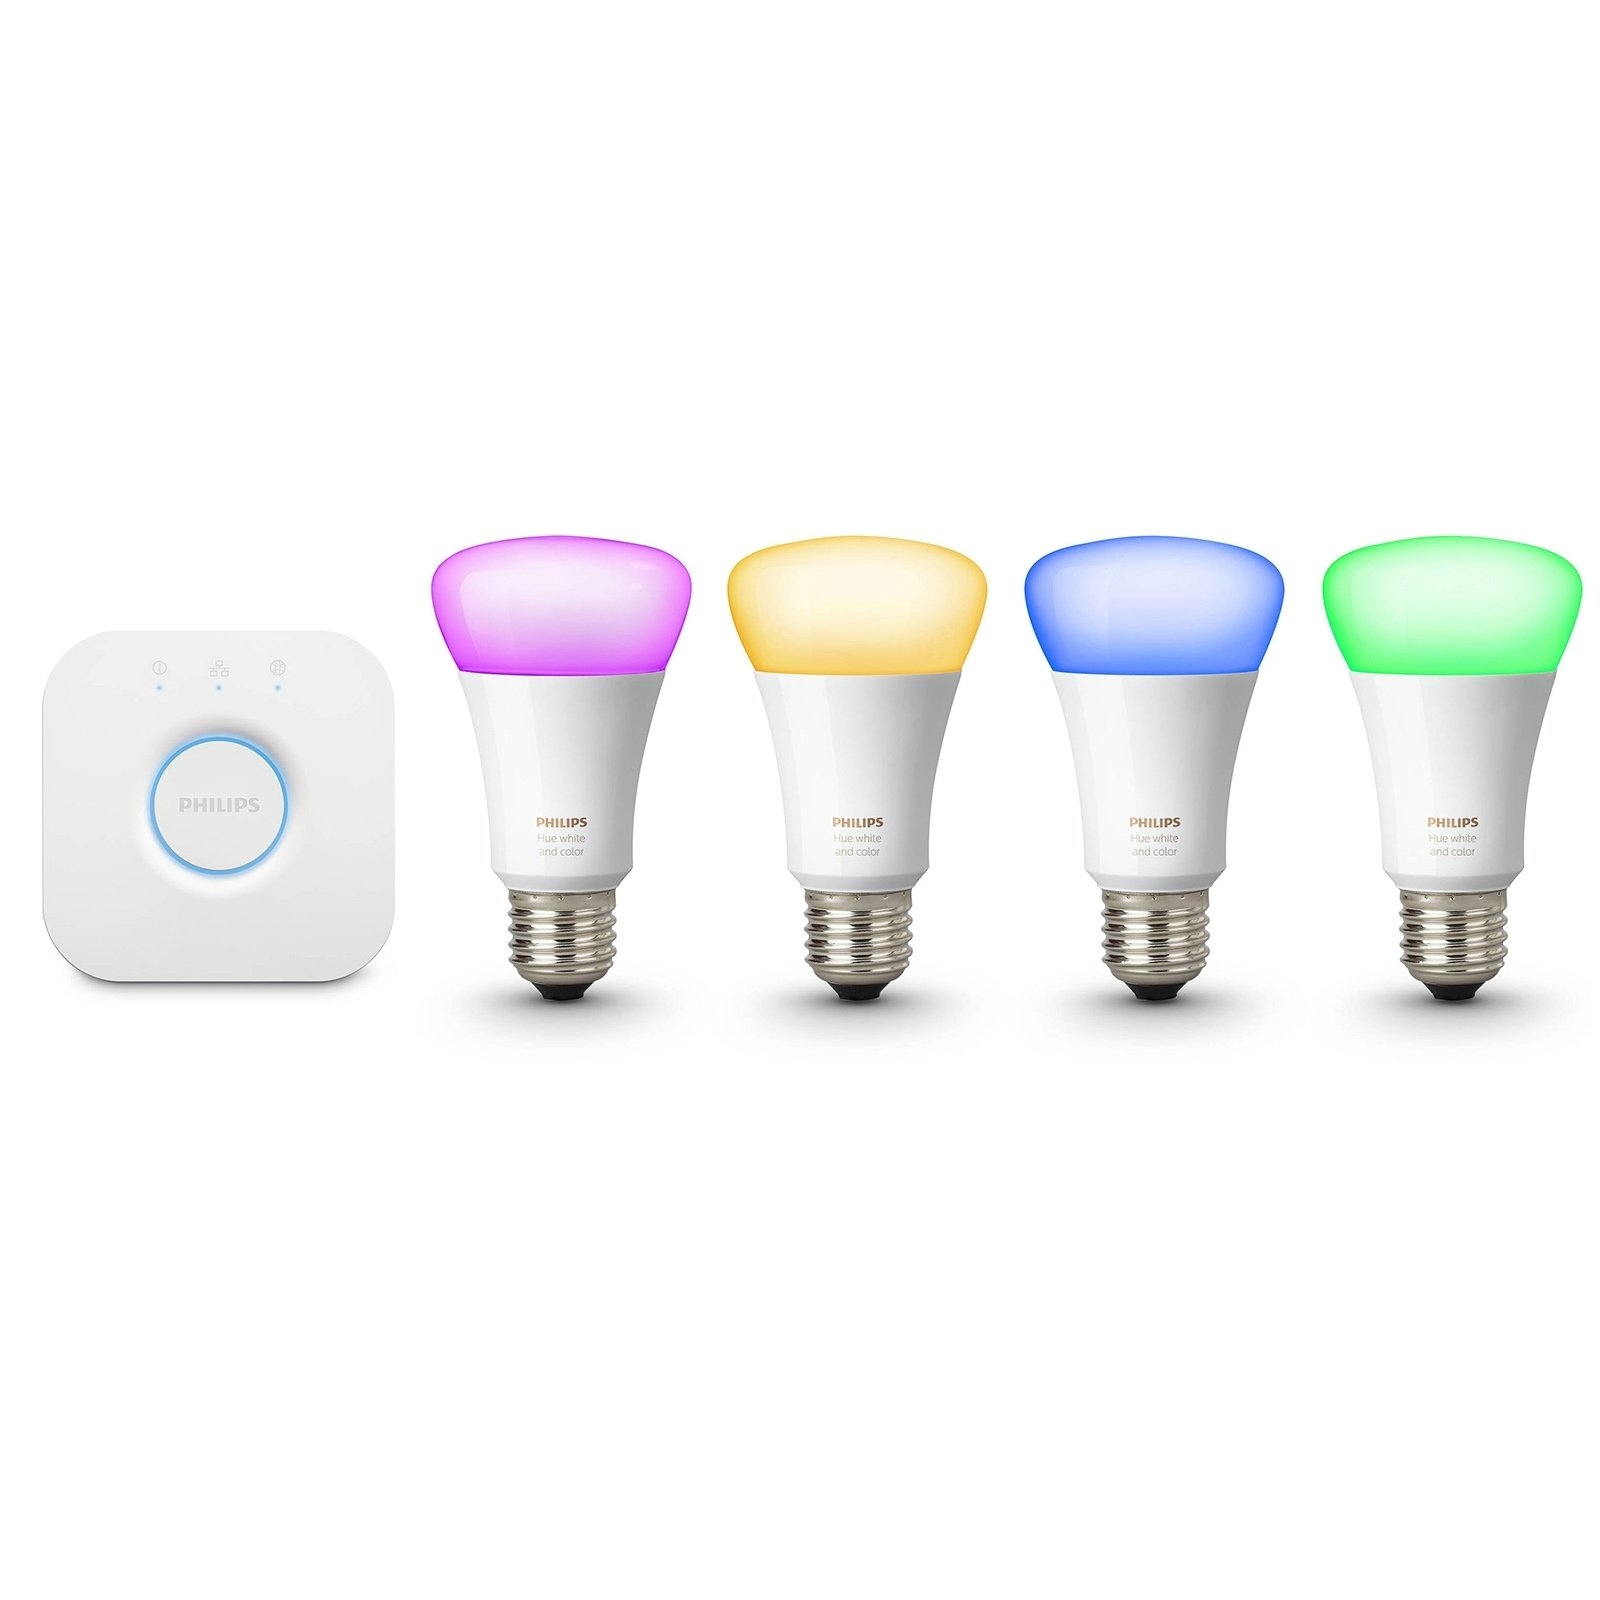 Philips Hue 471960 60W Equivalent White and Color Ambiance Kits, 3rd Generation, Compatible with Alexa (Renewed) (4 White and Color Ambiance Bulb + Bridge)